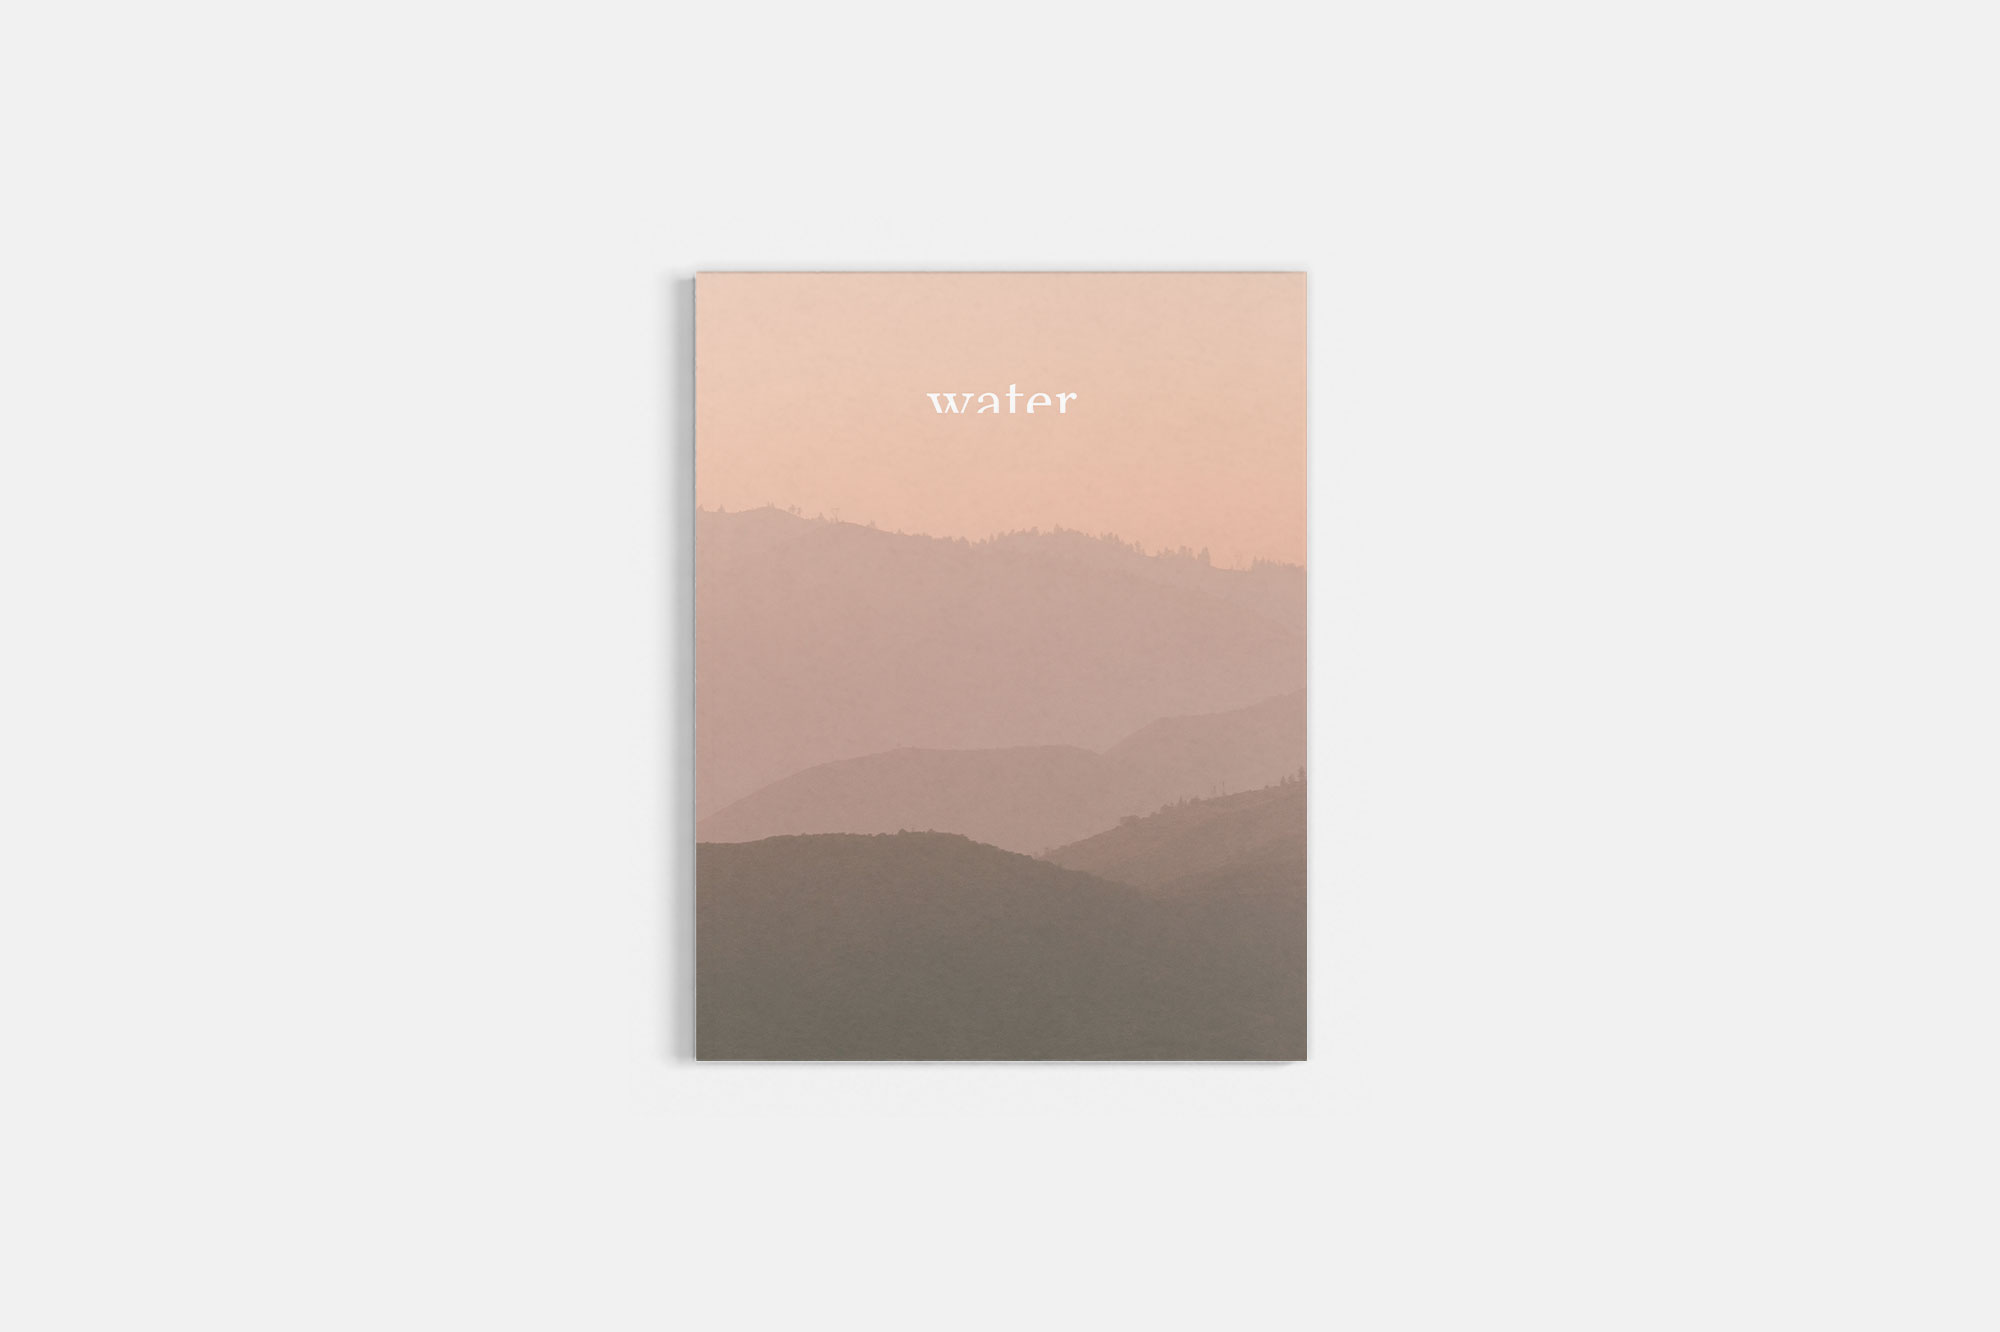 water-journal-volume-four-02.jpg